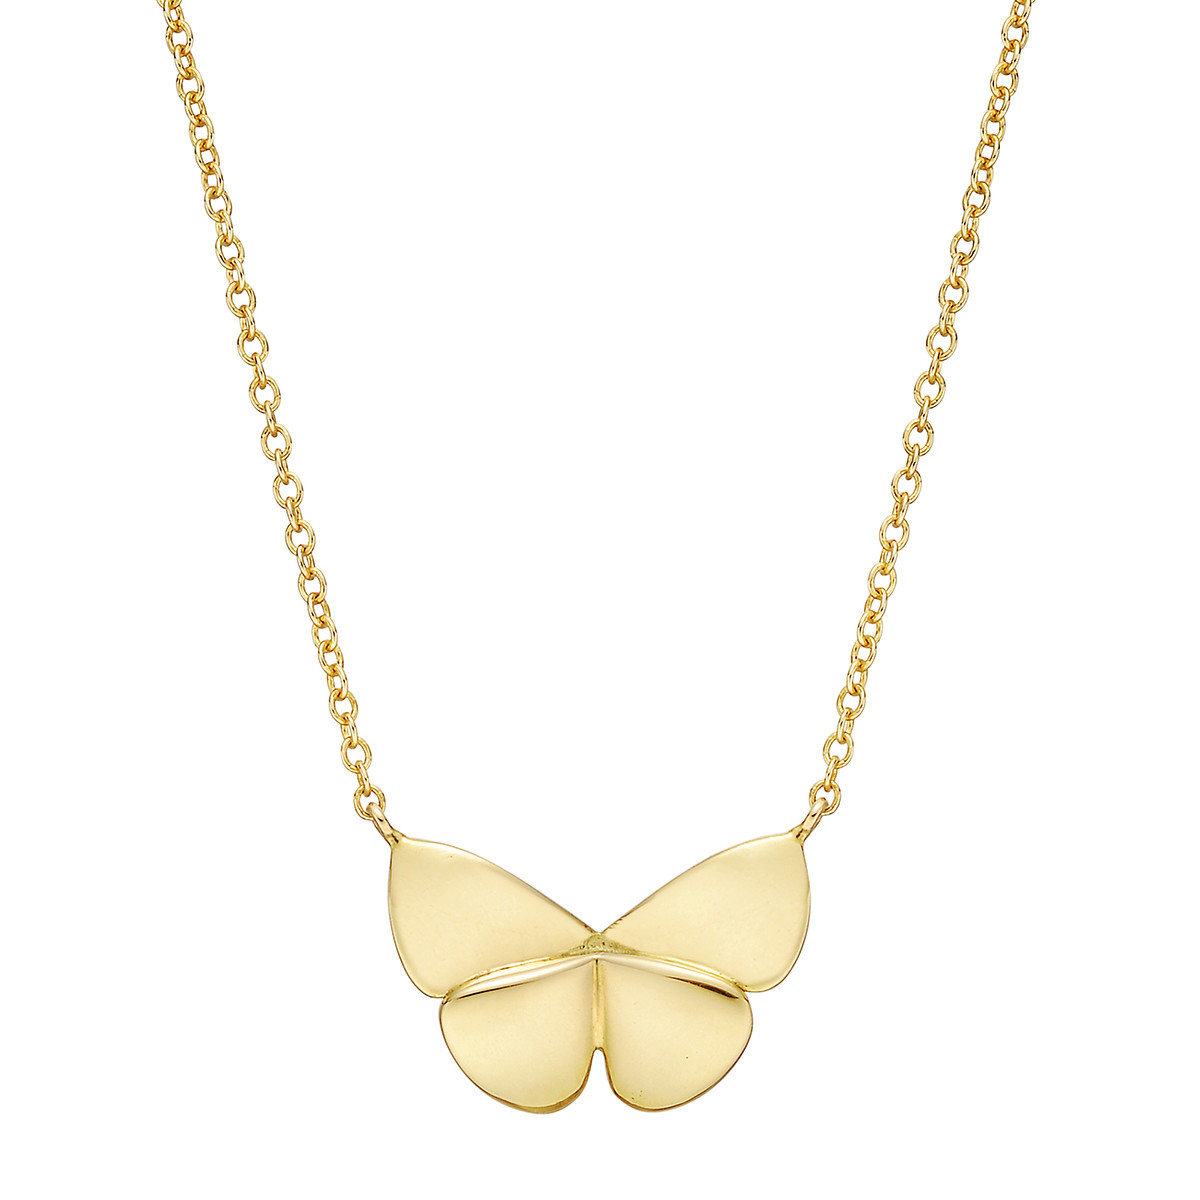 18k Yellow Gold Butterfly Pendant